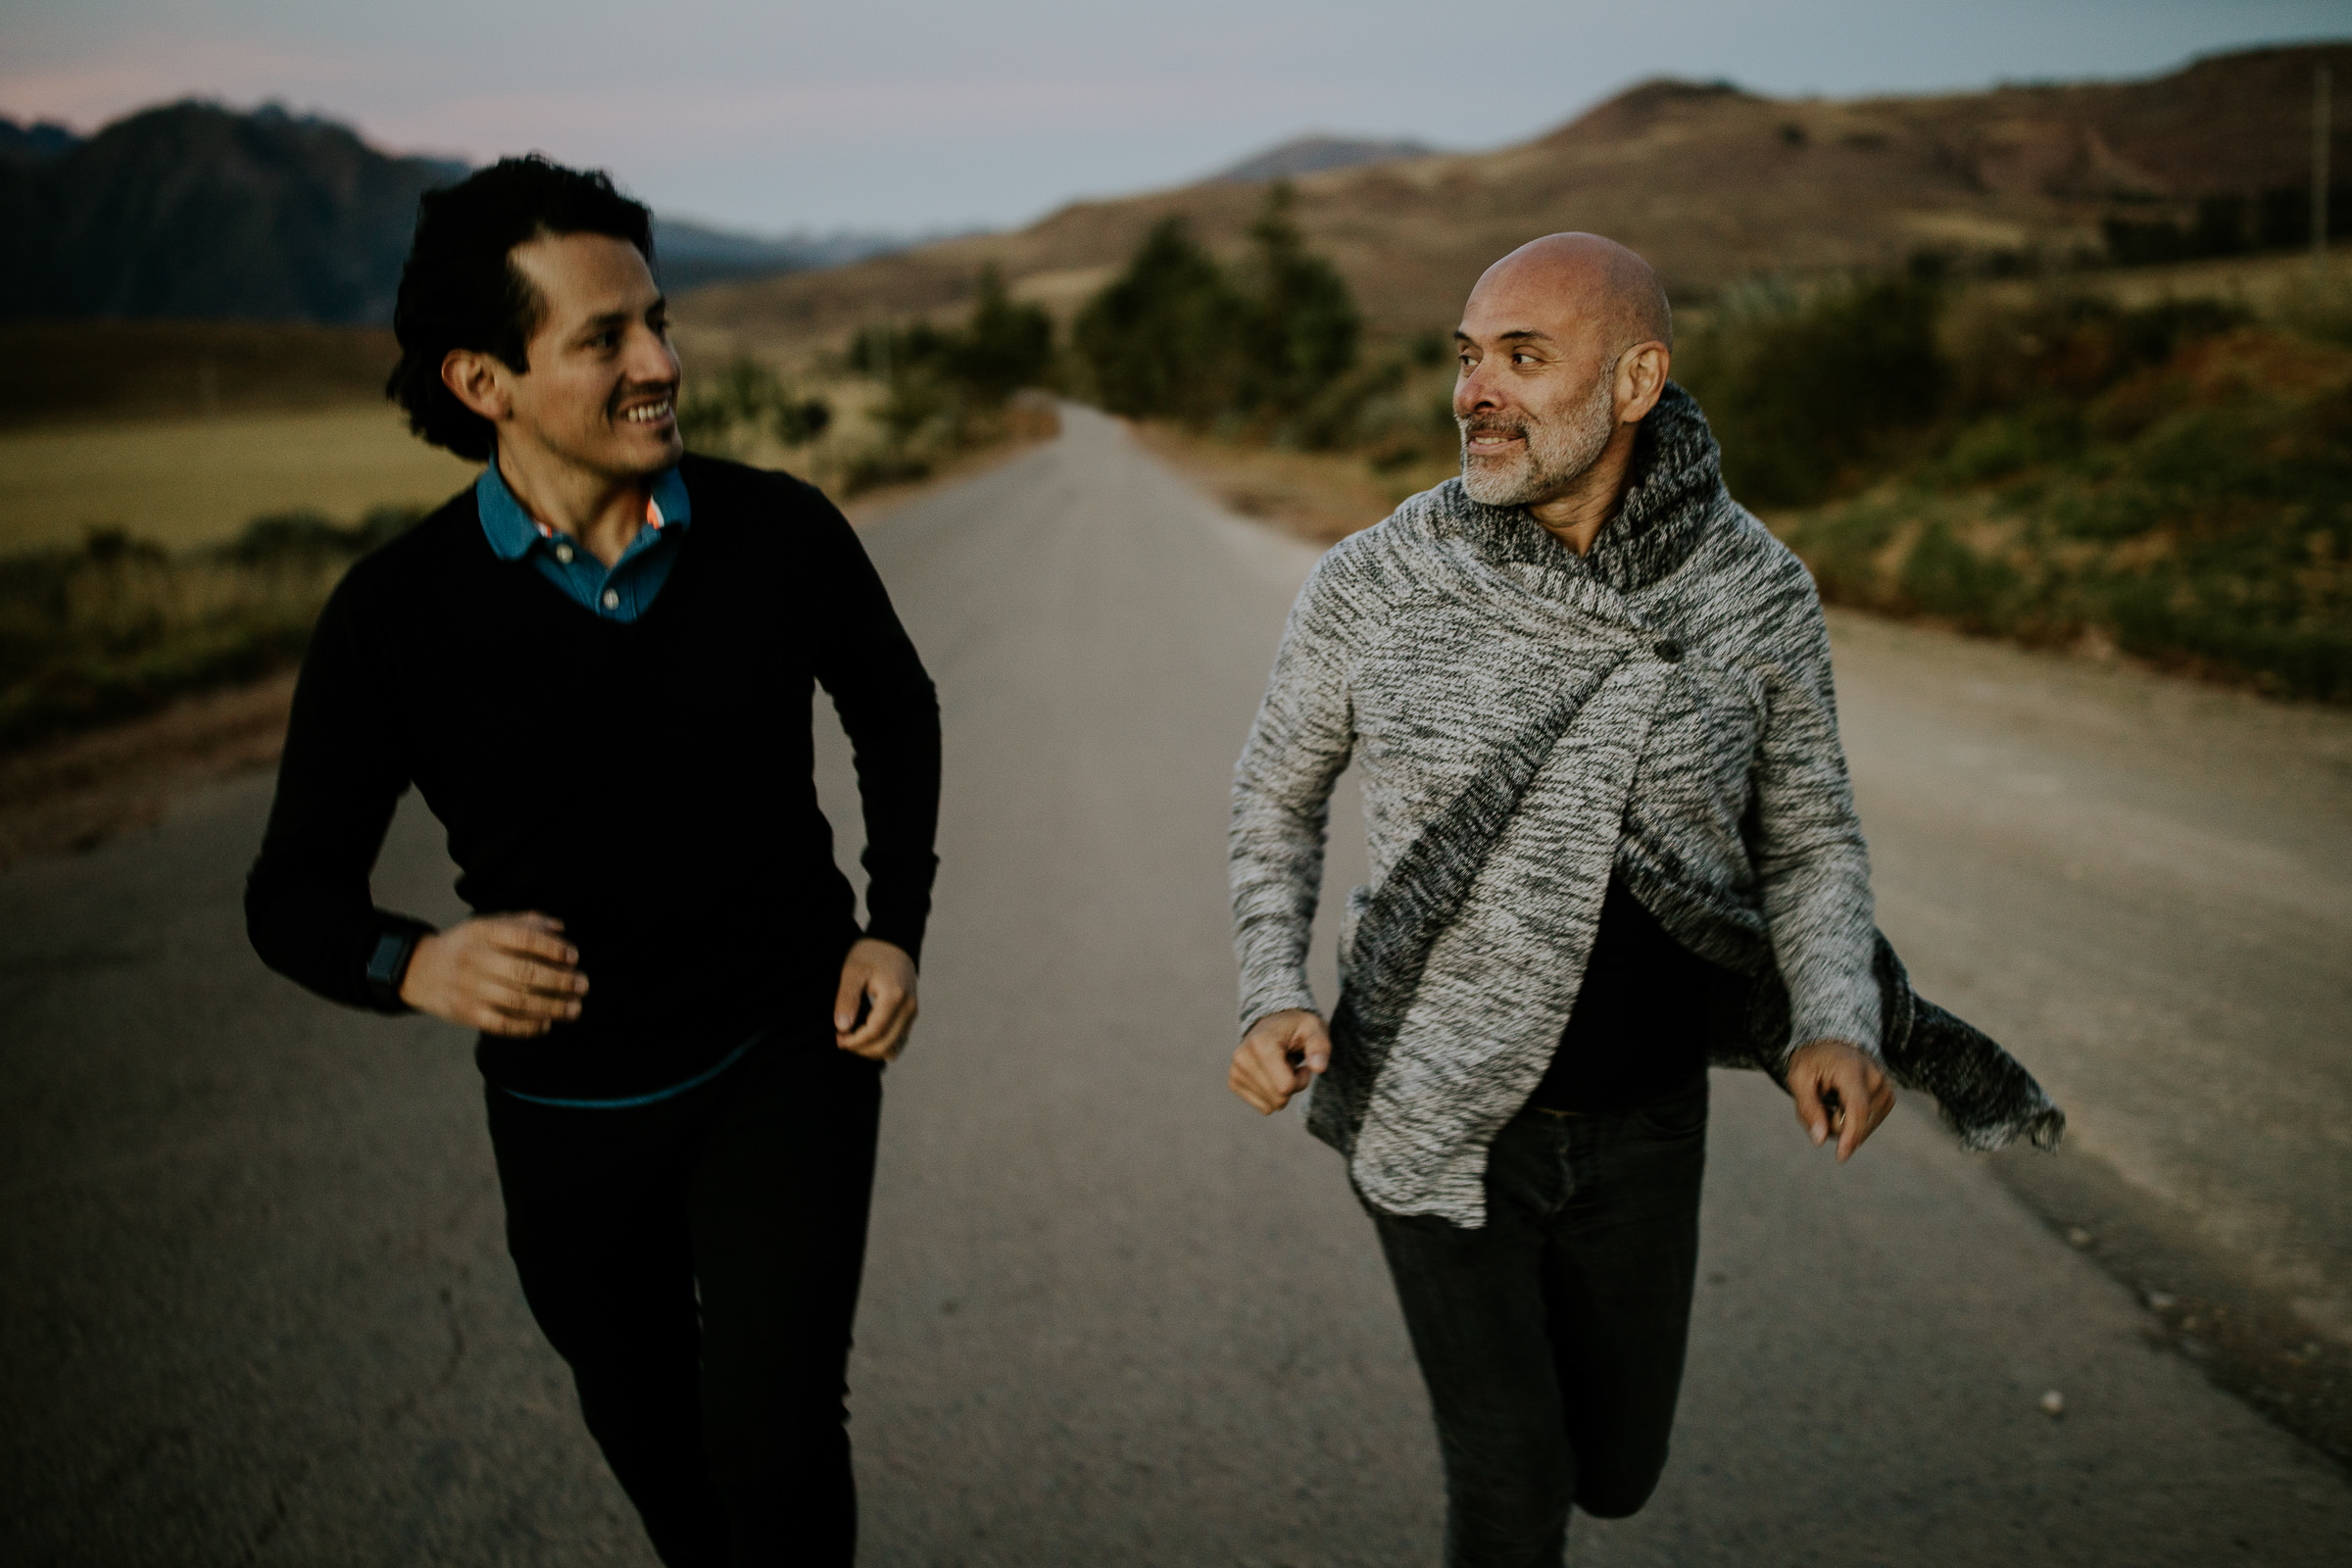 two men running on the road